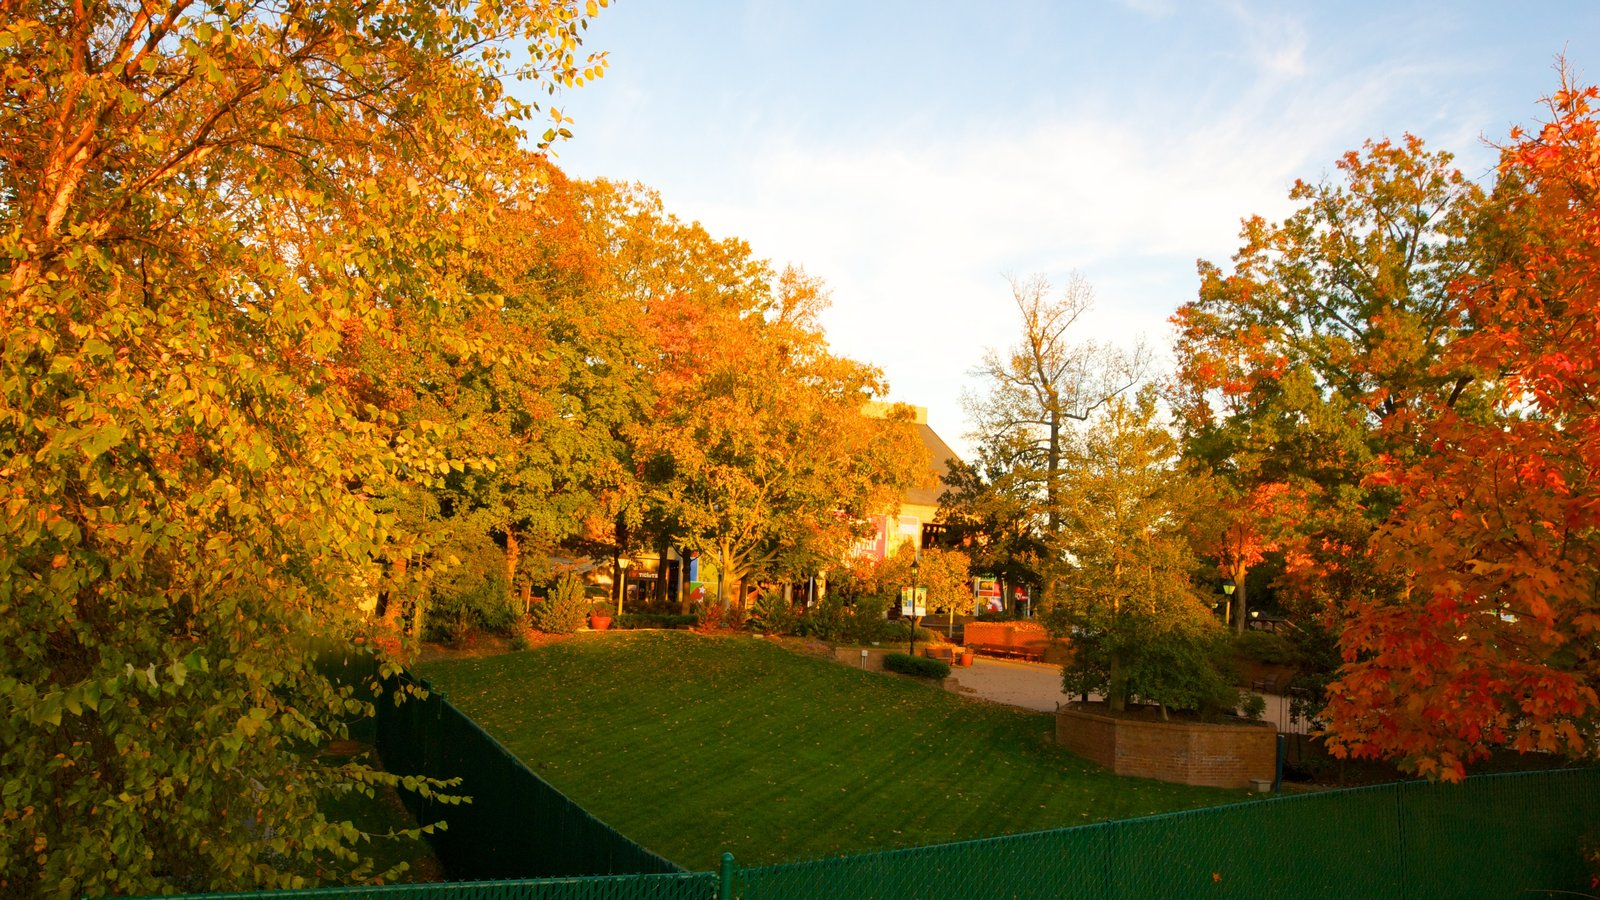 Grand Ole Opry which includes fall colors and a park